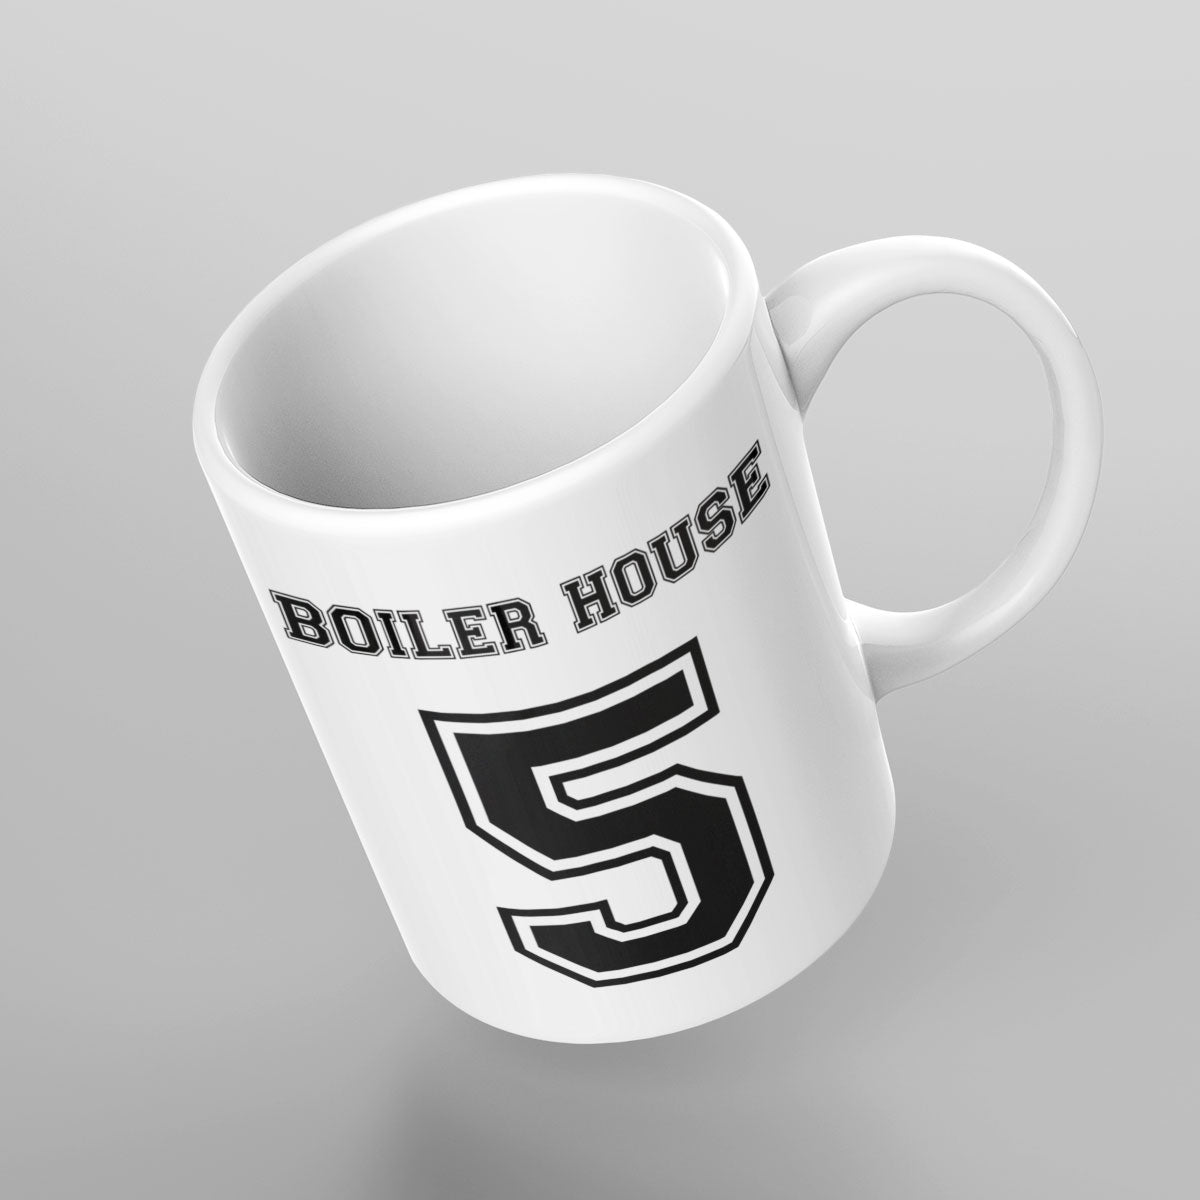 Boiler House Number 5 Rugby Mug - First XV rugbystuff.com